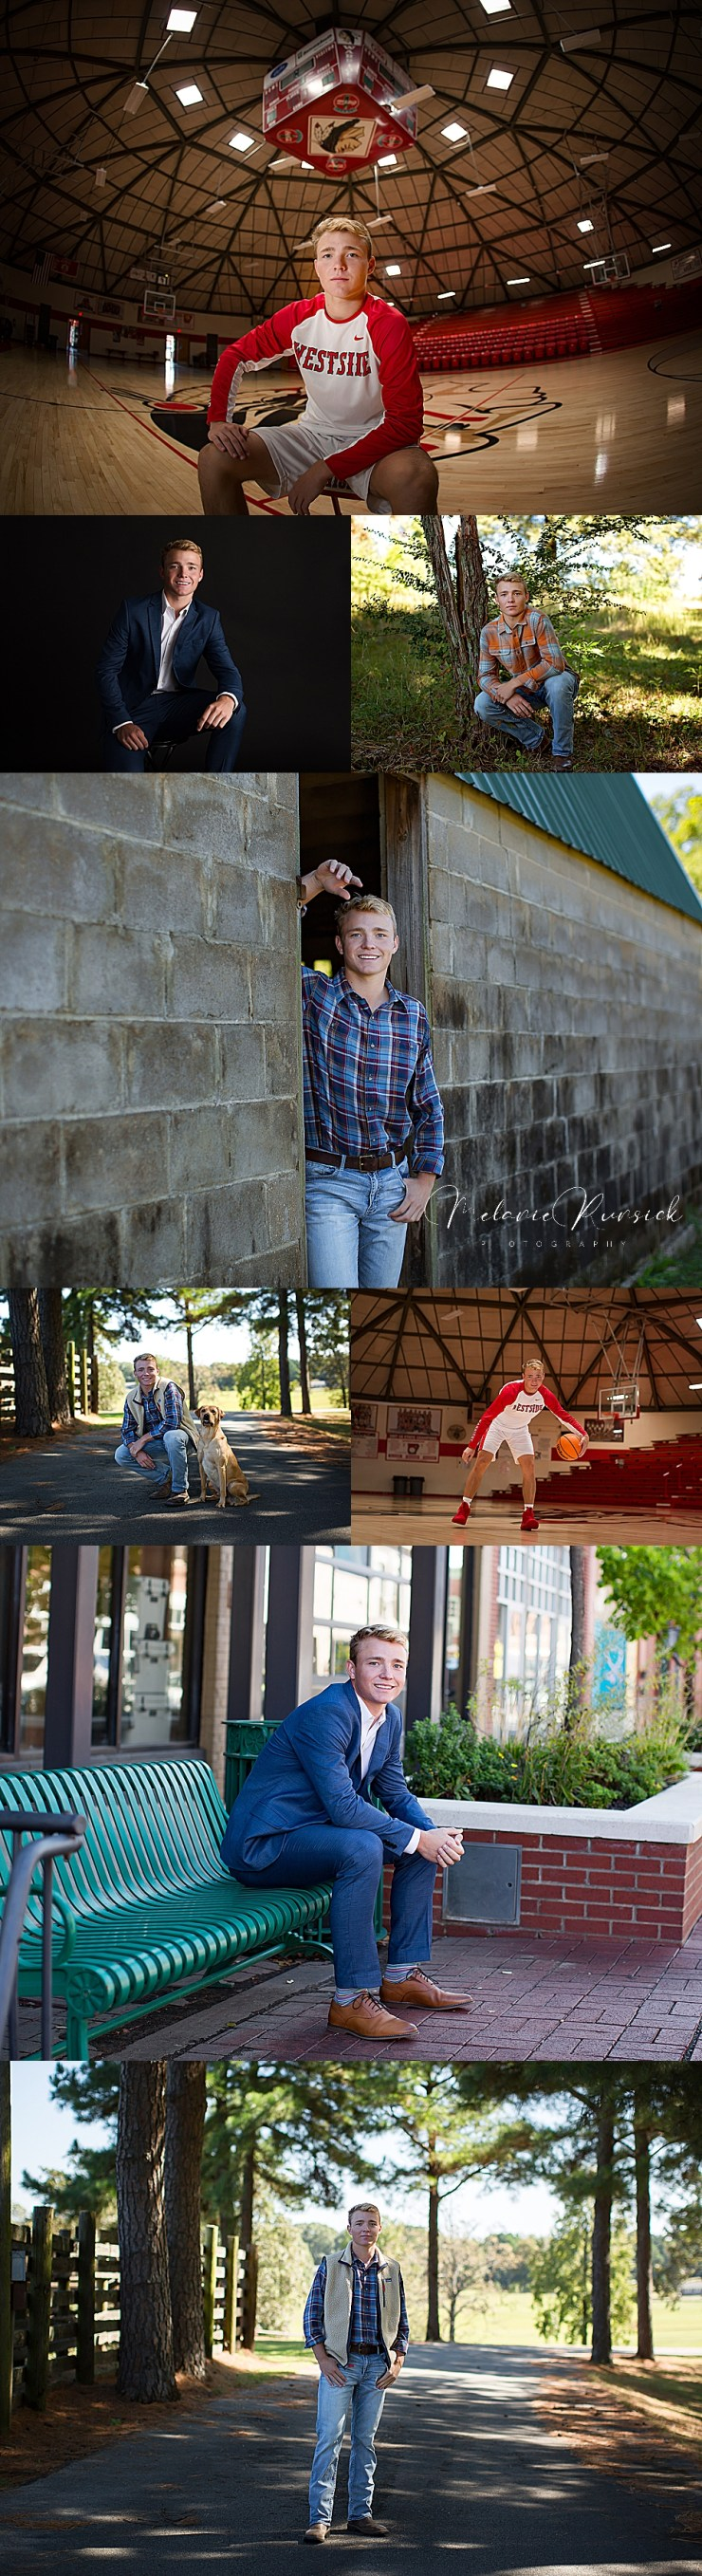 Westside High School Senior Photographer Melanie Runsick Photographer Jonesboro AR